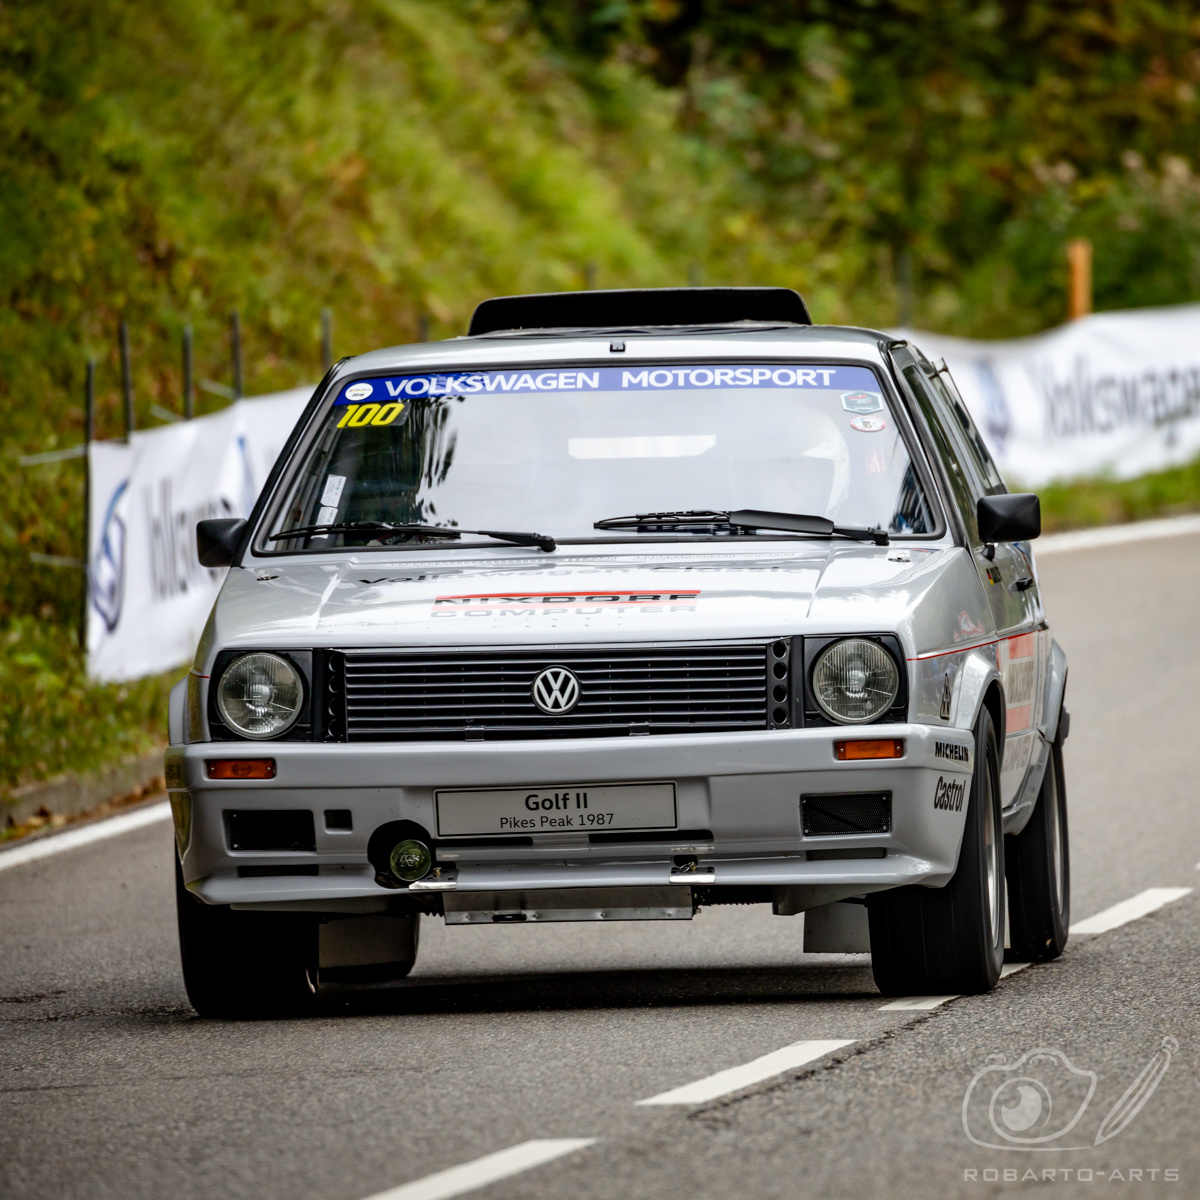 Rossfeldrennen 2018 - VW Golf II Pikes Peak